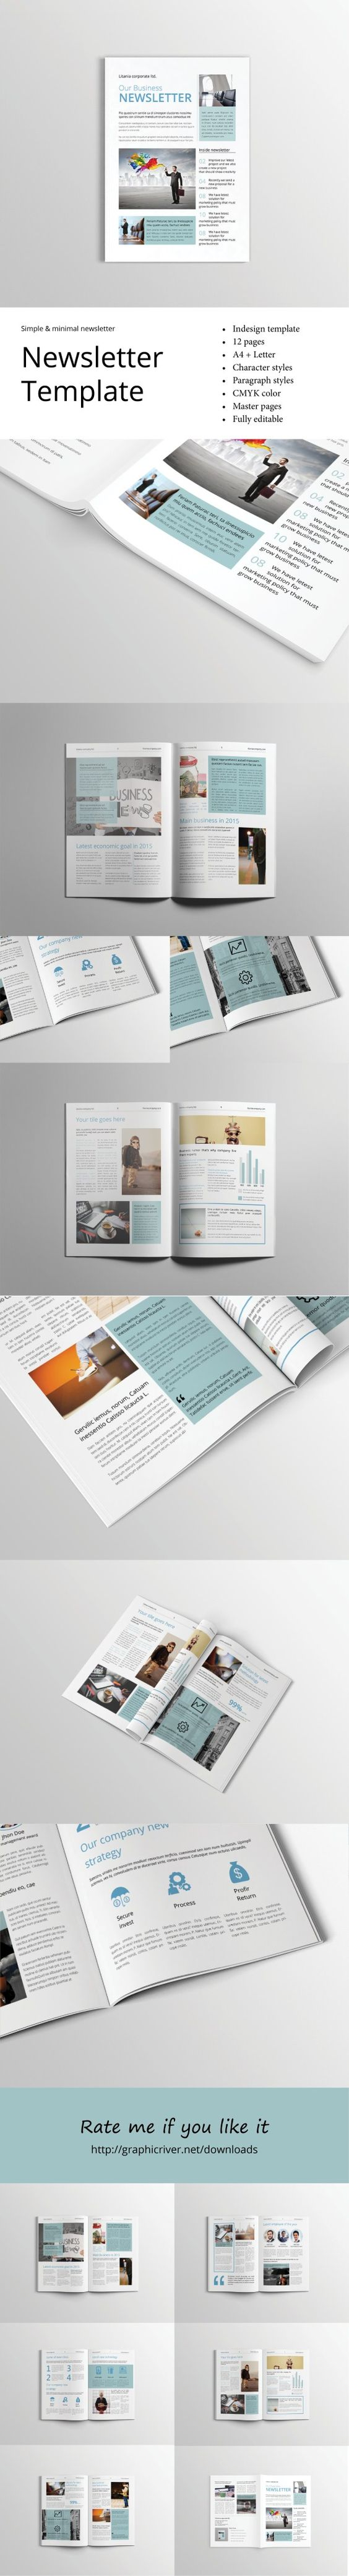 free indesign newsletter templates - pinterest the world s catalog of ideas